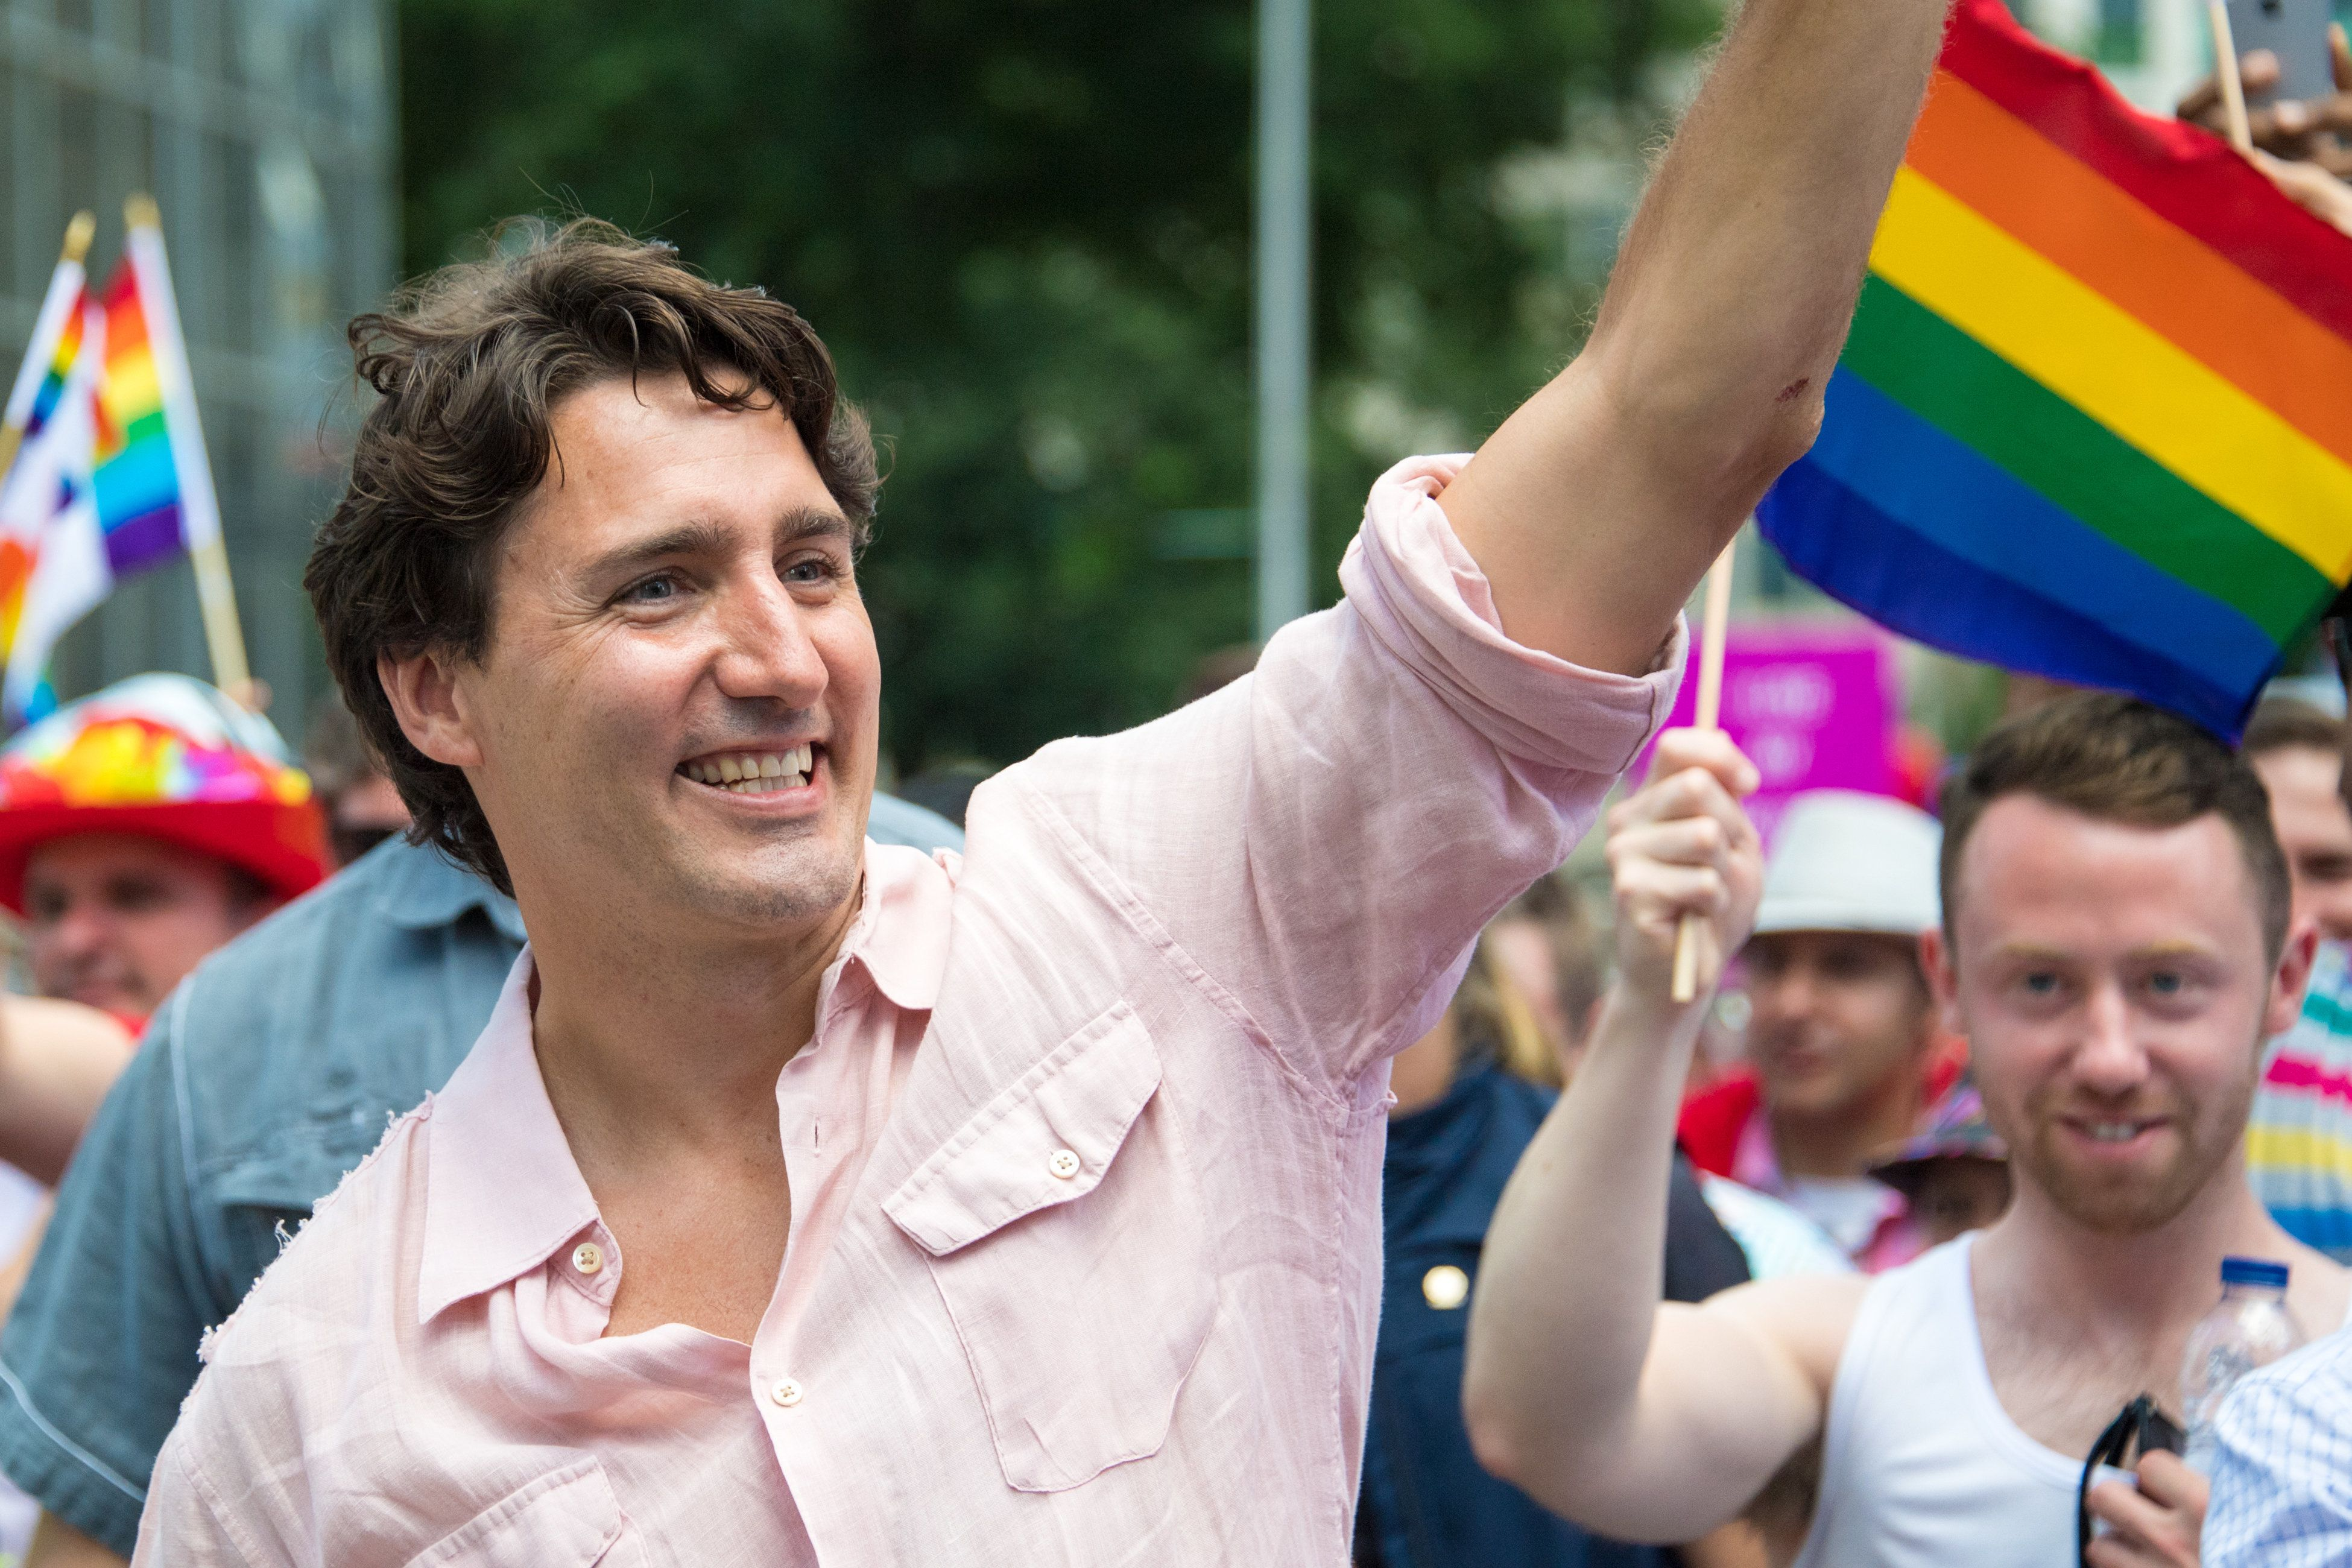 Justin Trudeau Delivers Formal Apology To LGBTQ